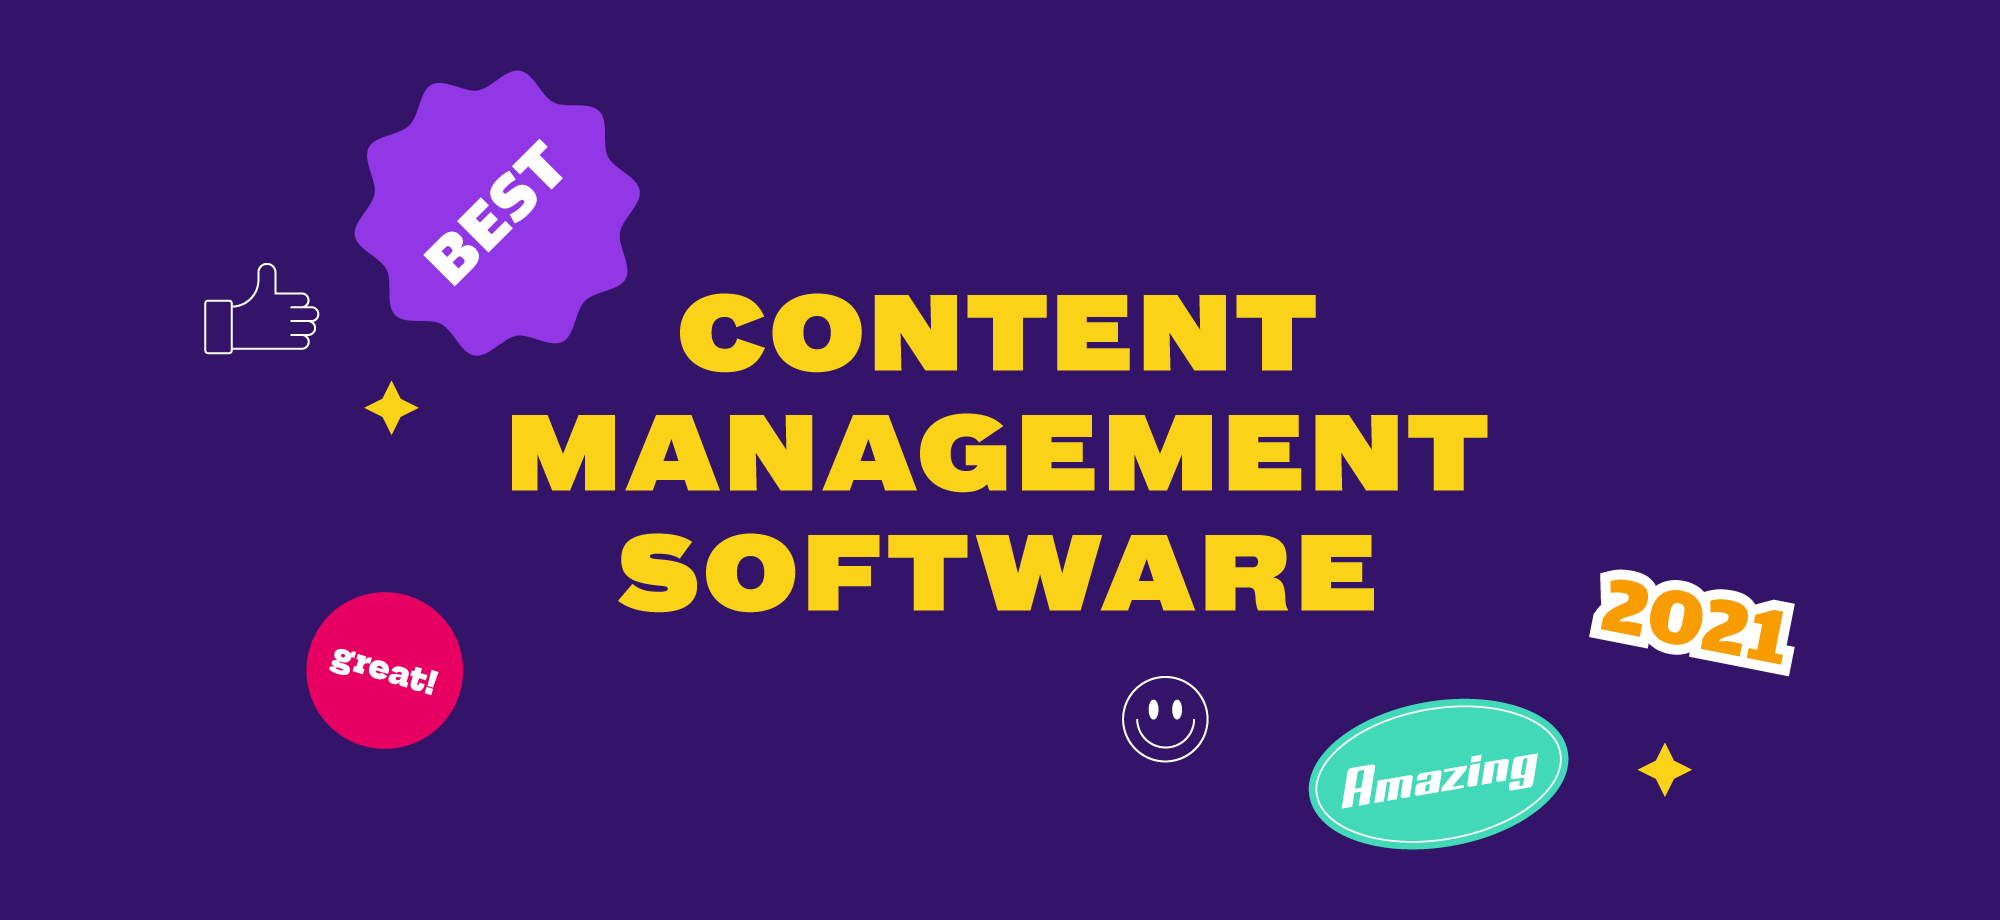 Best Content Management Software In 2021